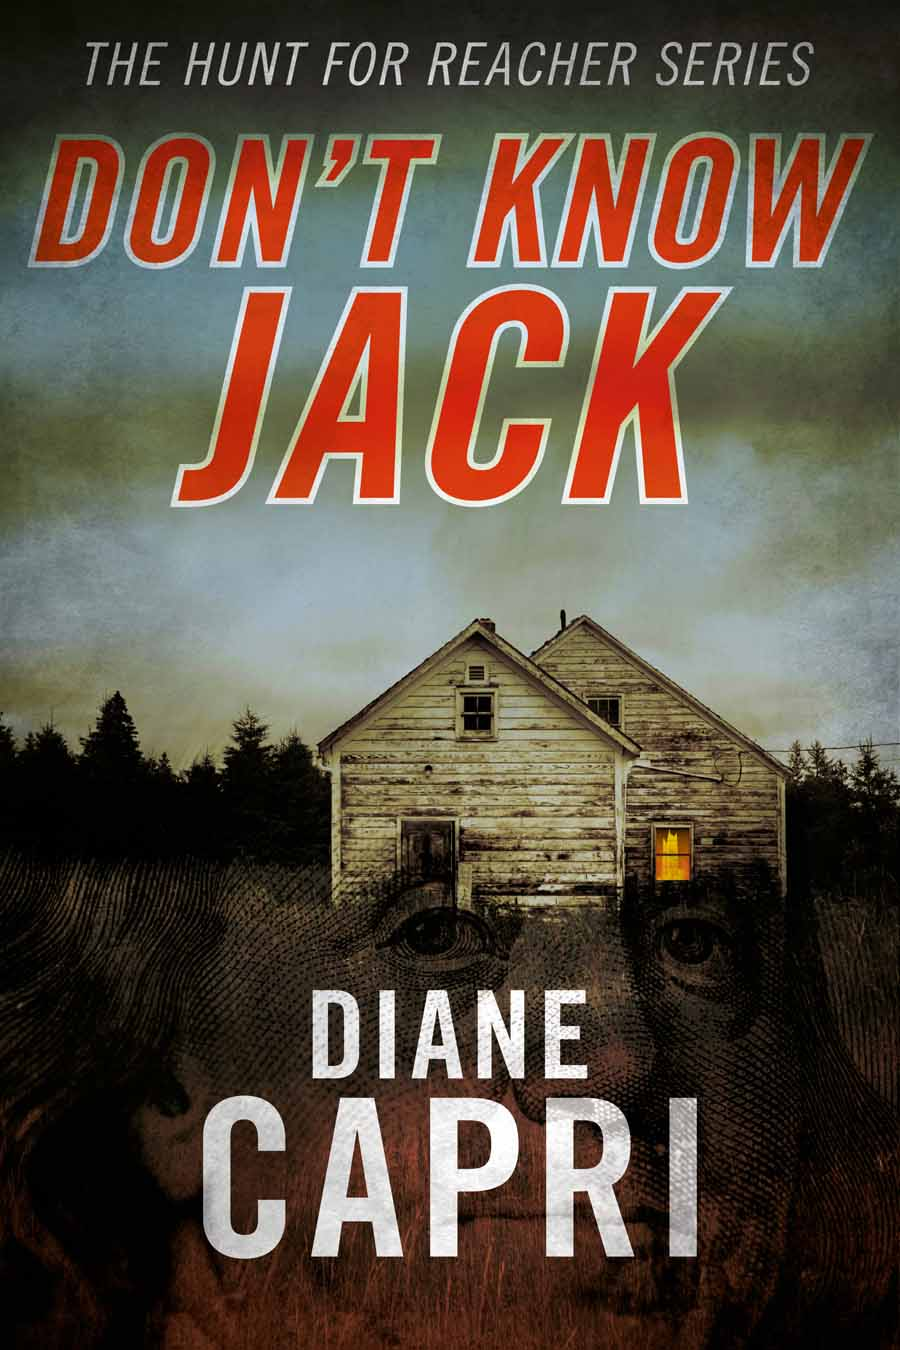 Reader S Ask Diane Capri About Don T Know Jack Diane